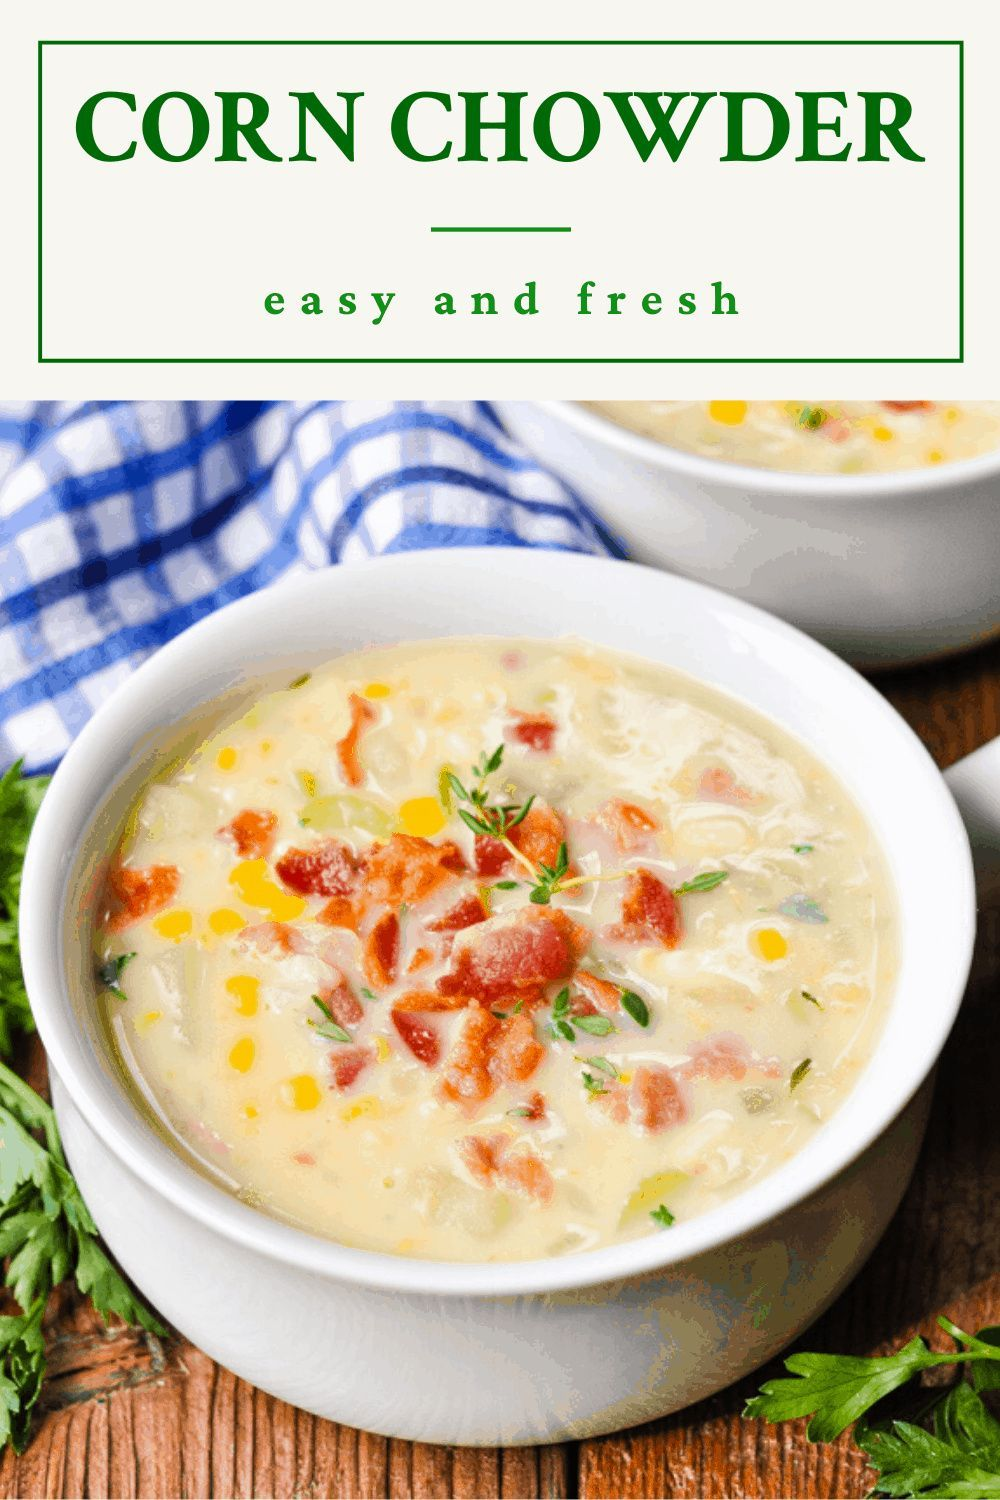 Corn Chowder Recipe Recipe In 2020 Corn Chowder Chowder Recipes Recipes